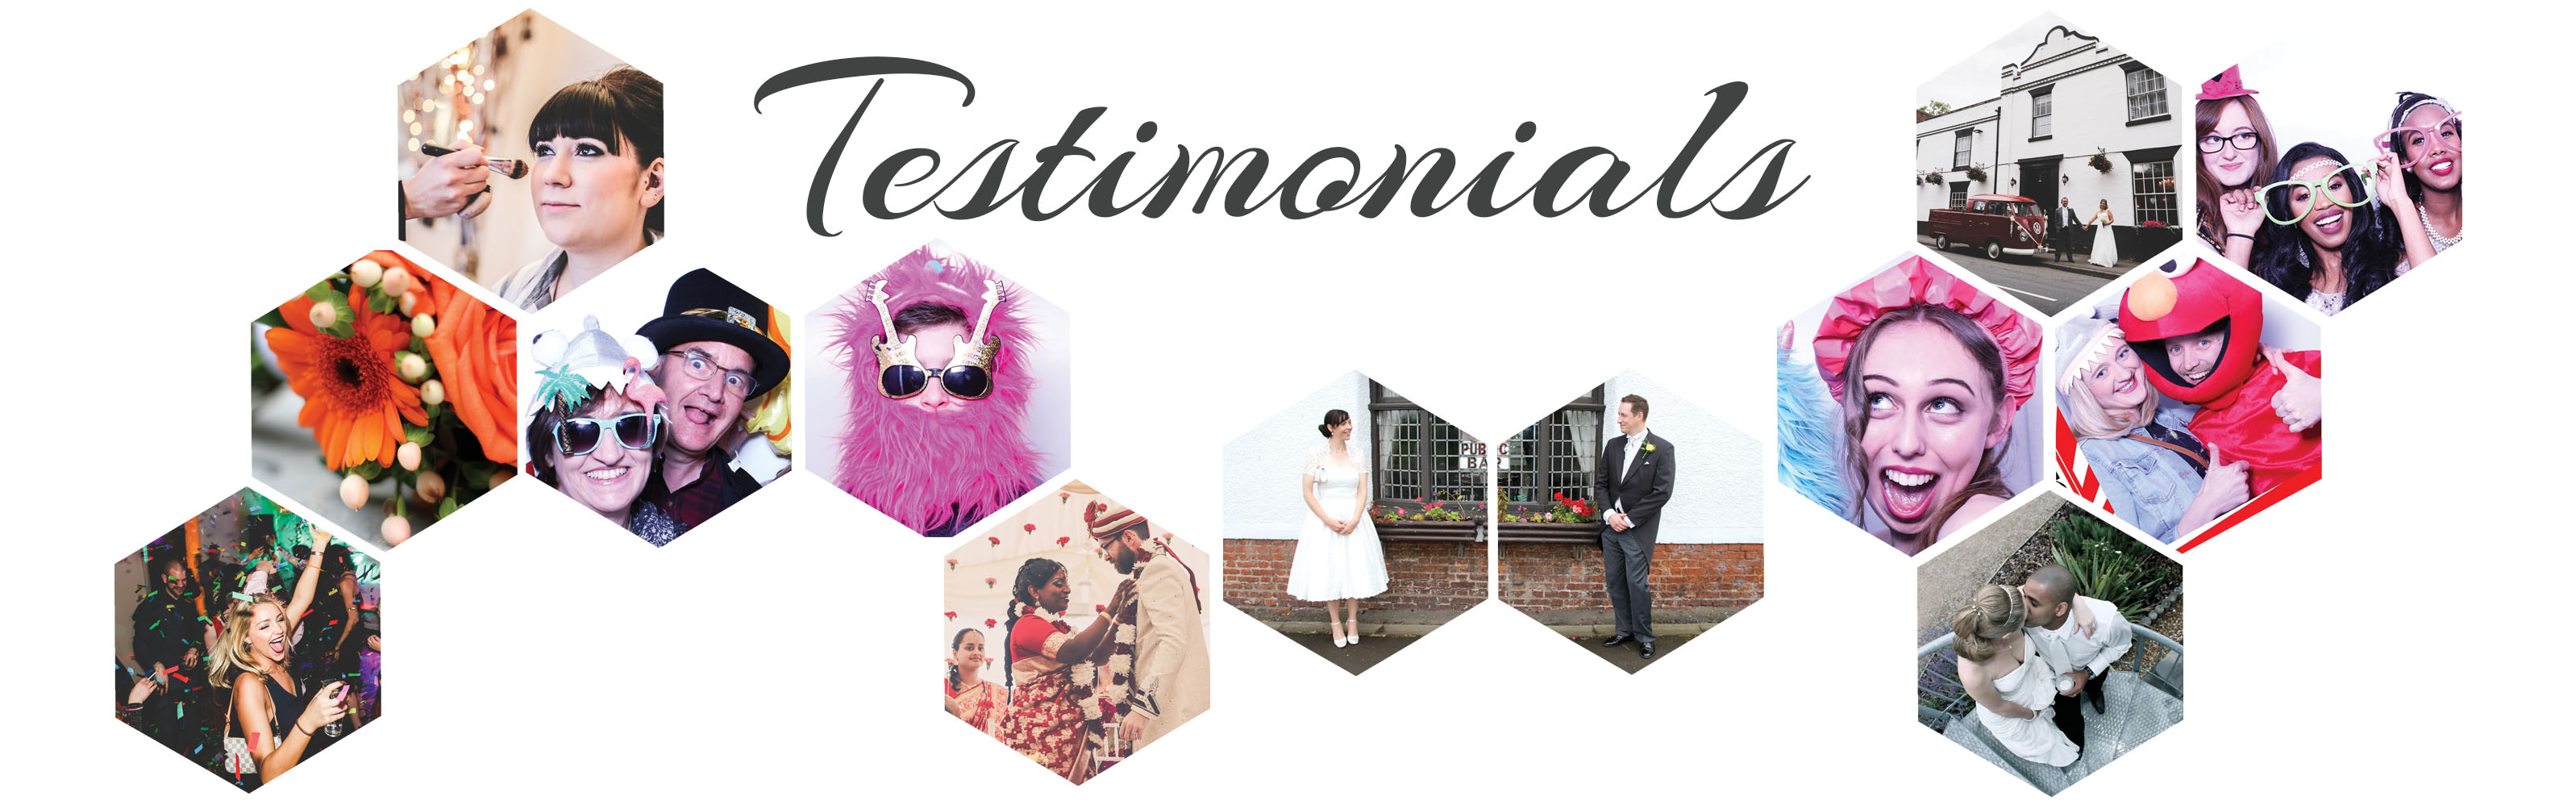 wedding photography testimonials midlands